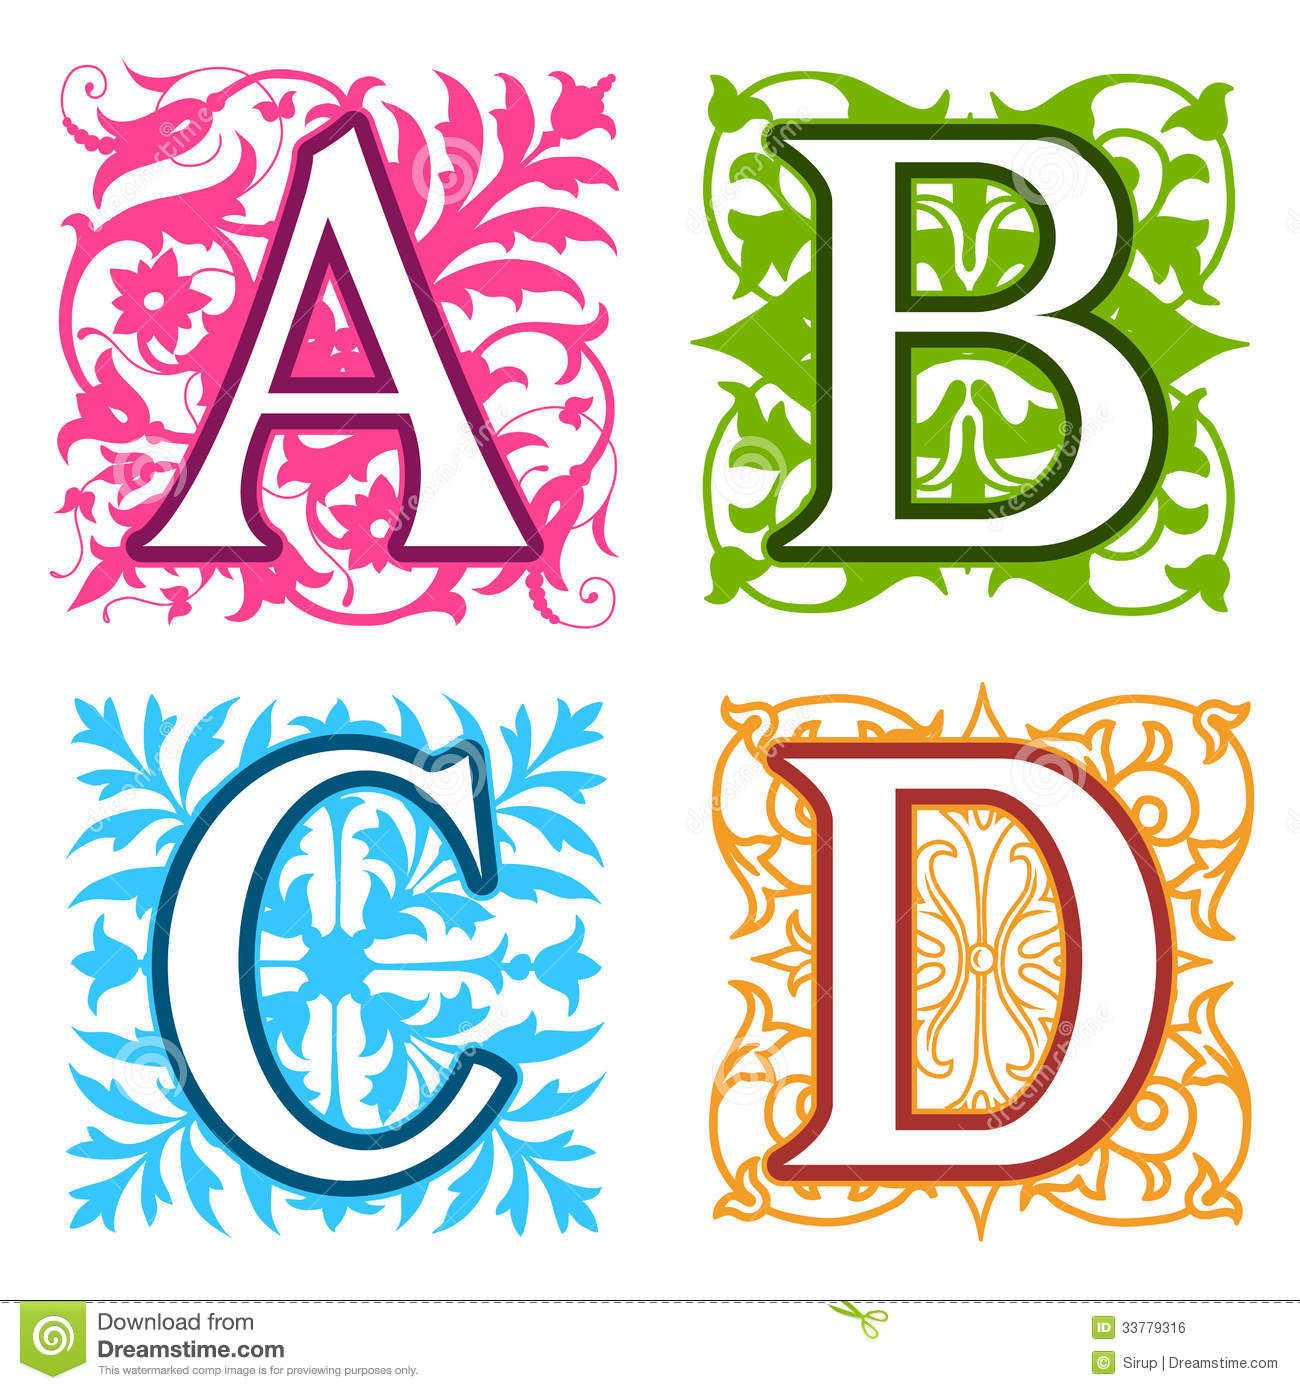 a b c d alphabet letters floral elements royalty free. Black Bedroom Furniture Sets. Home Design Ideas